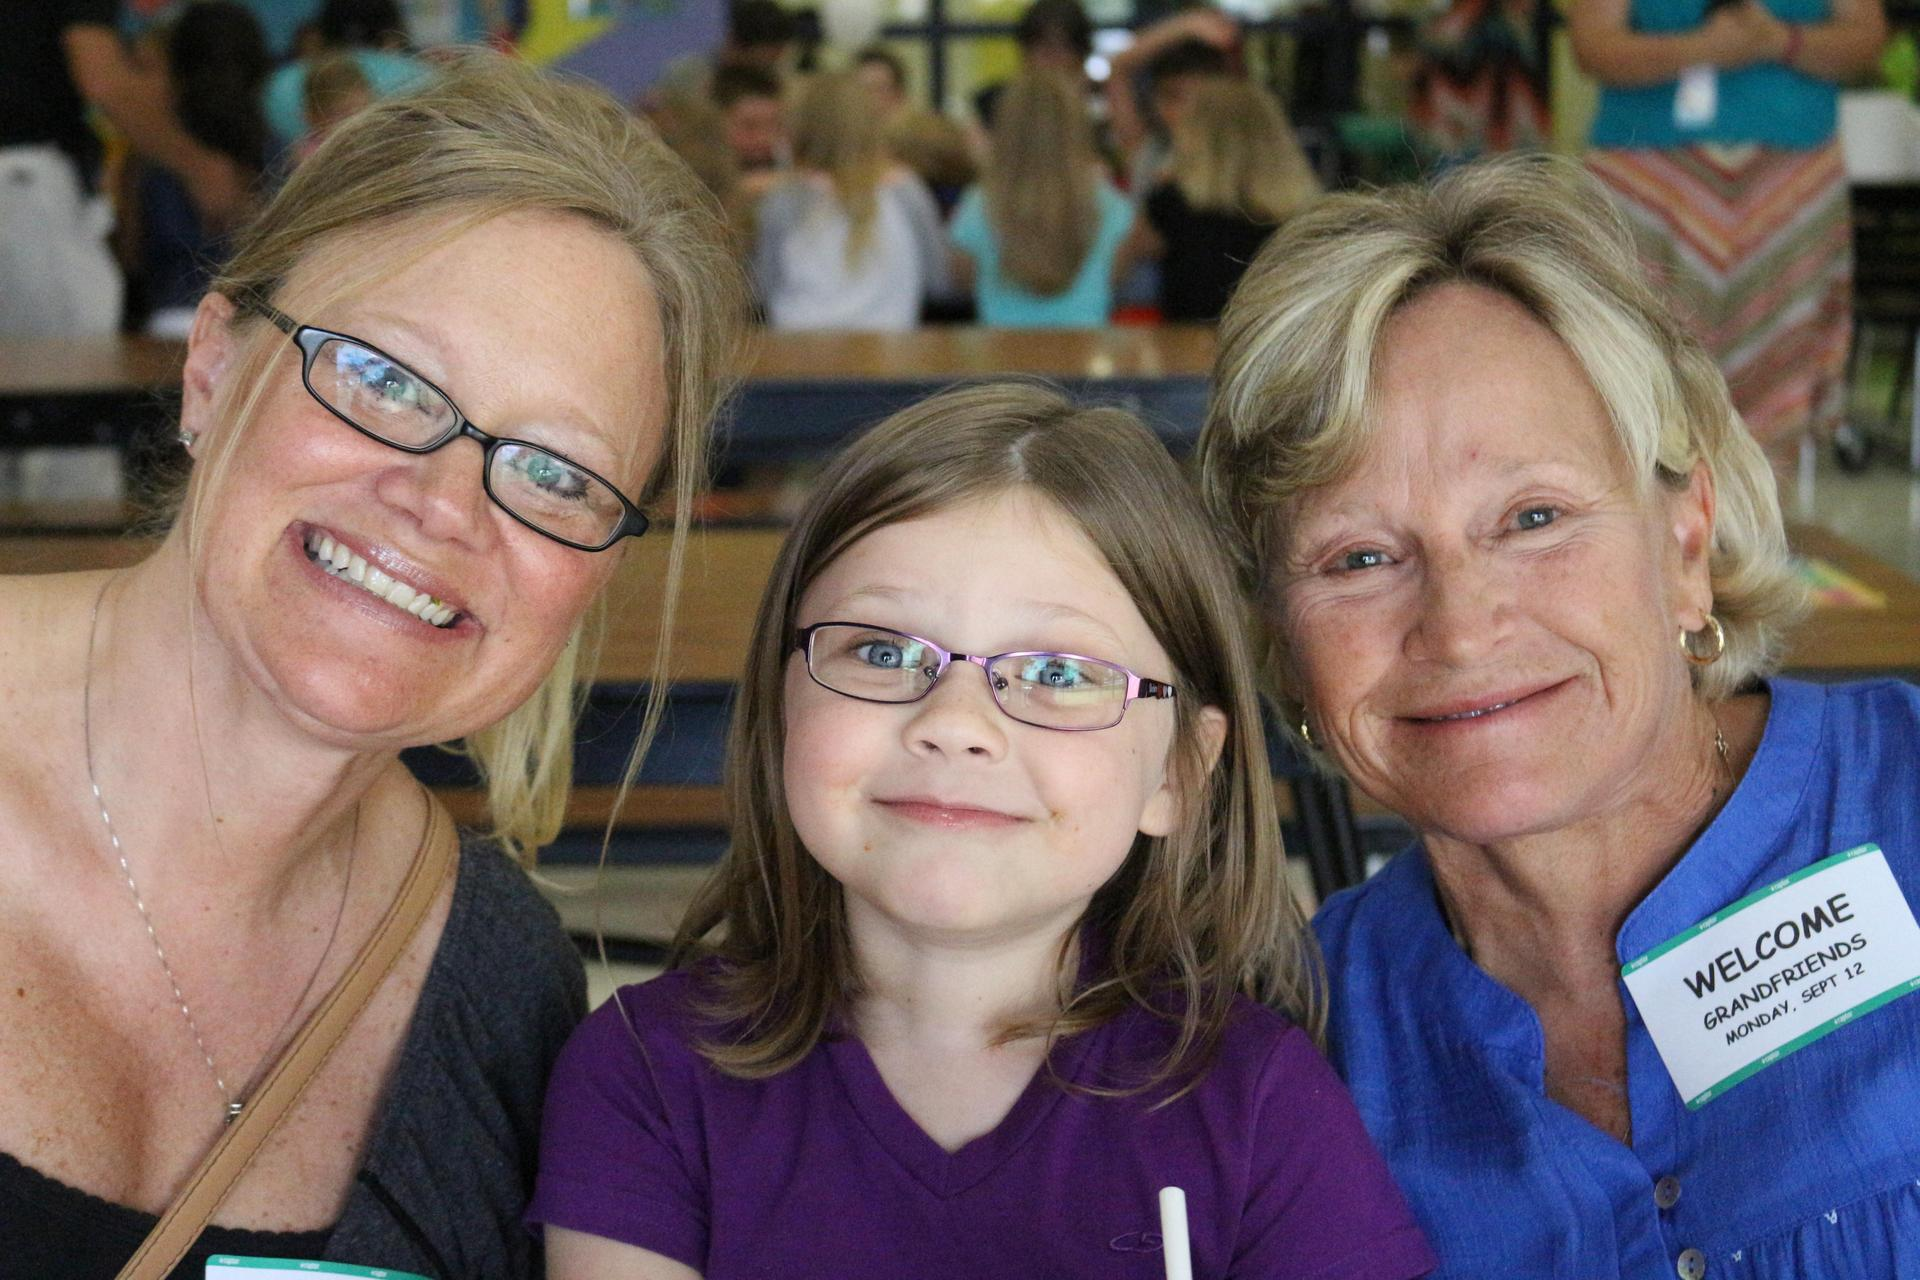 3 generations of girls together